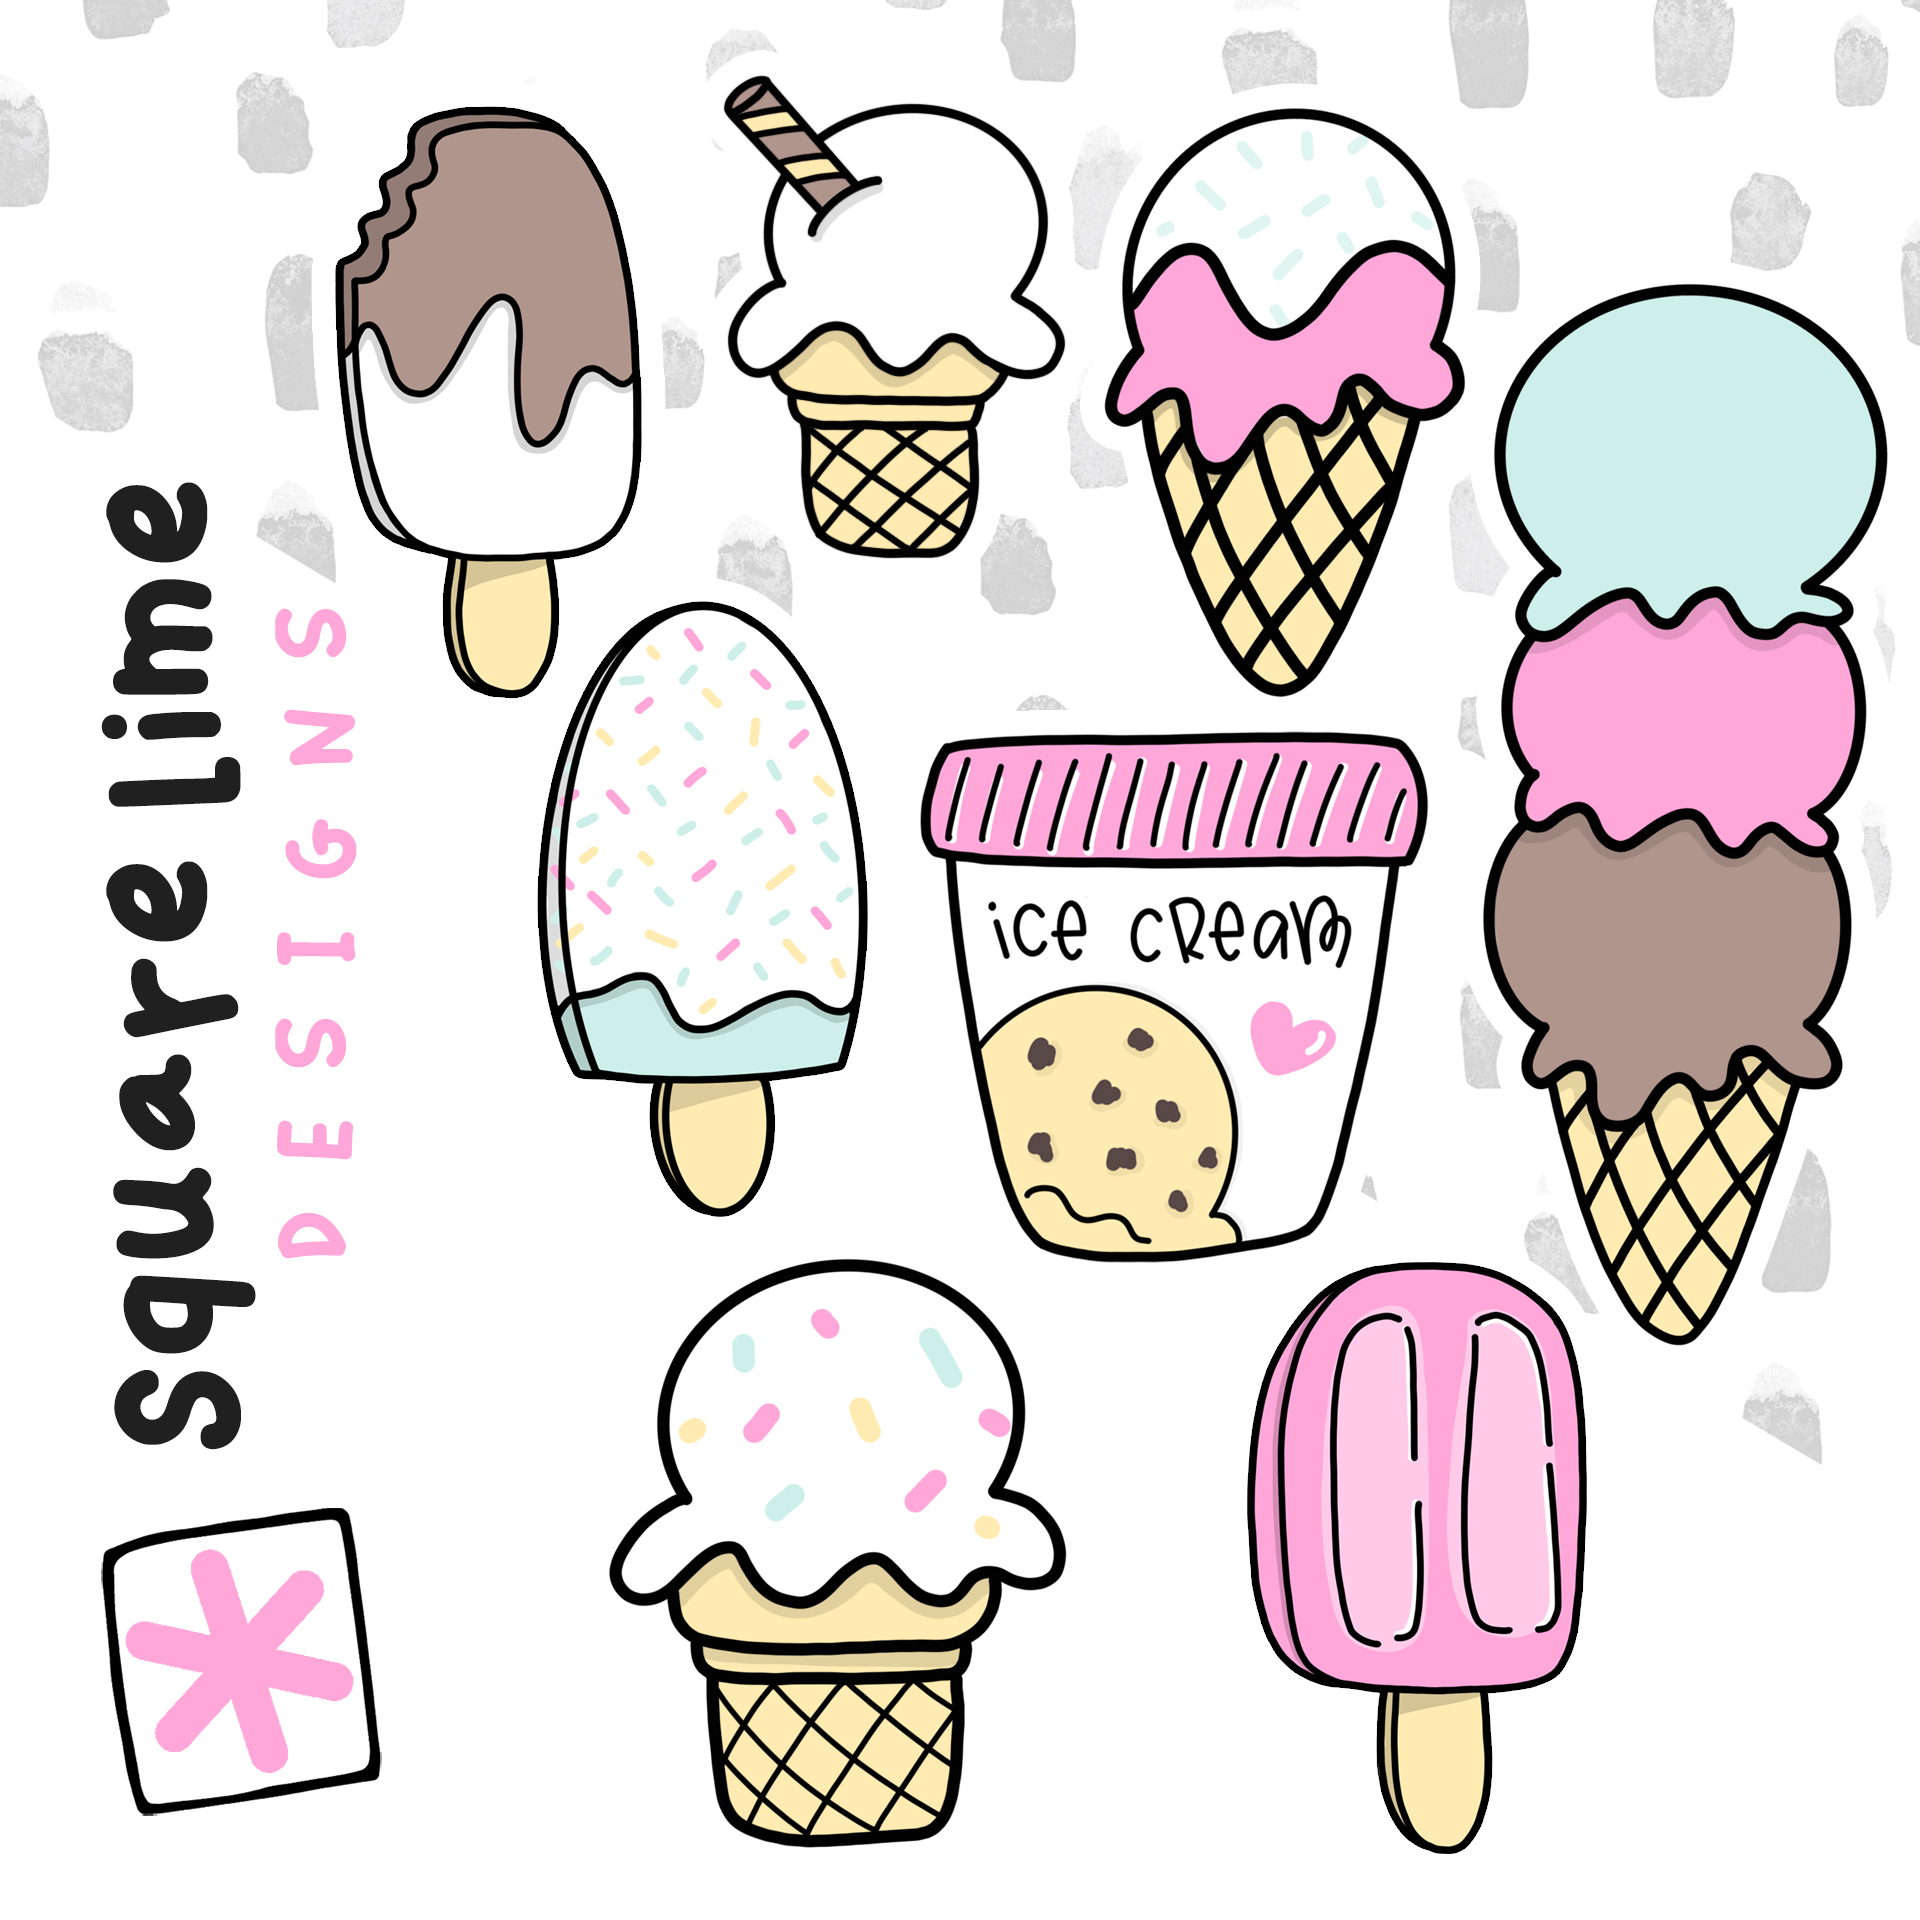 Ice Cream Stickers - August 2019 bullet journal setup - squarelimedesigns.com